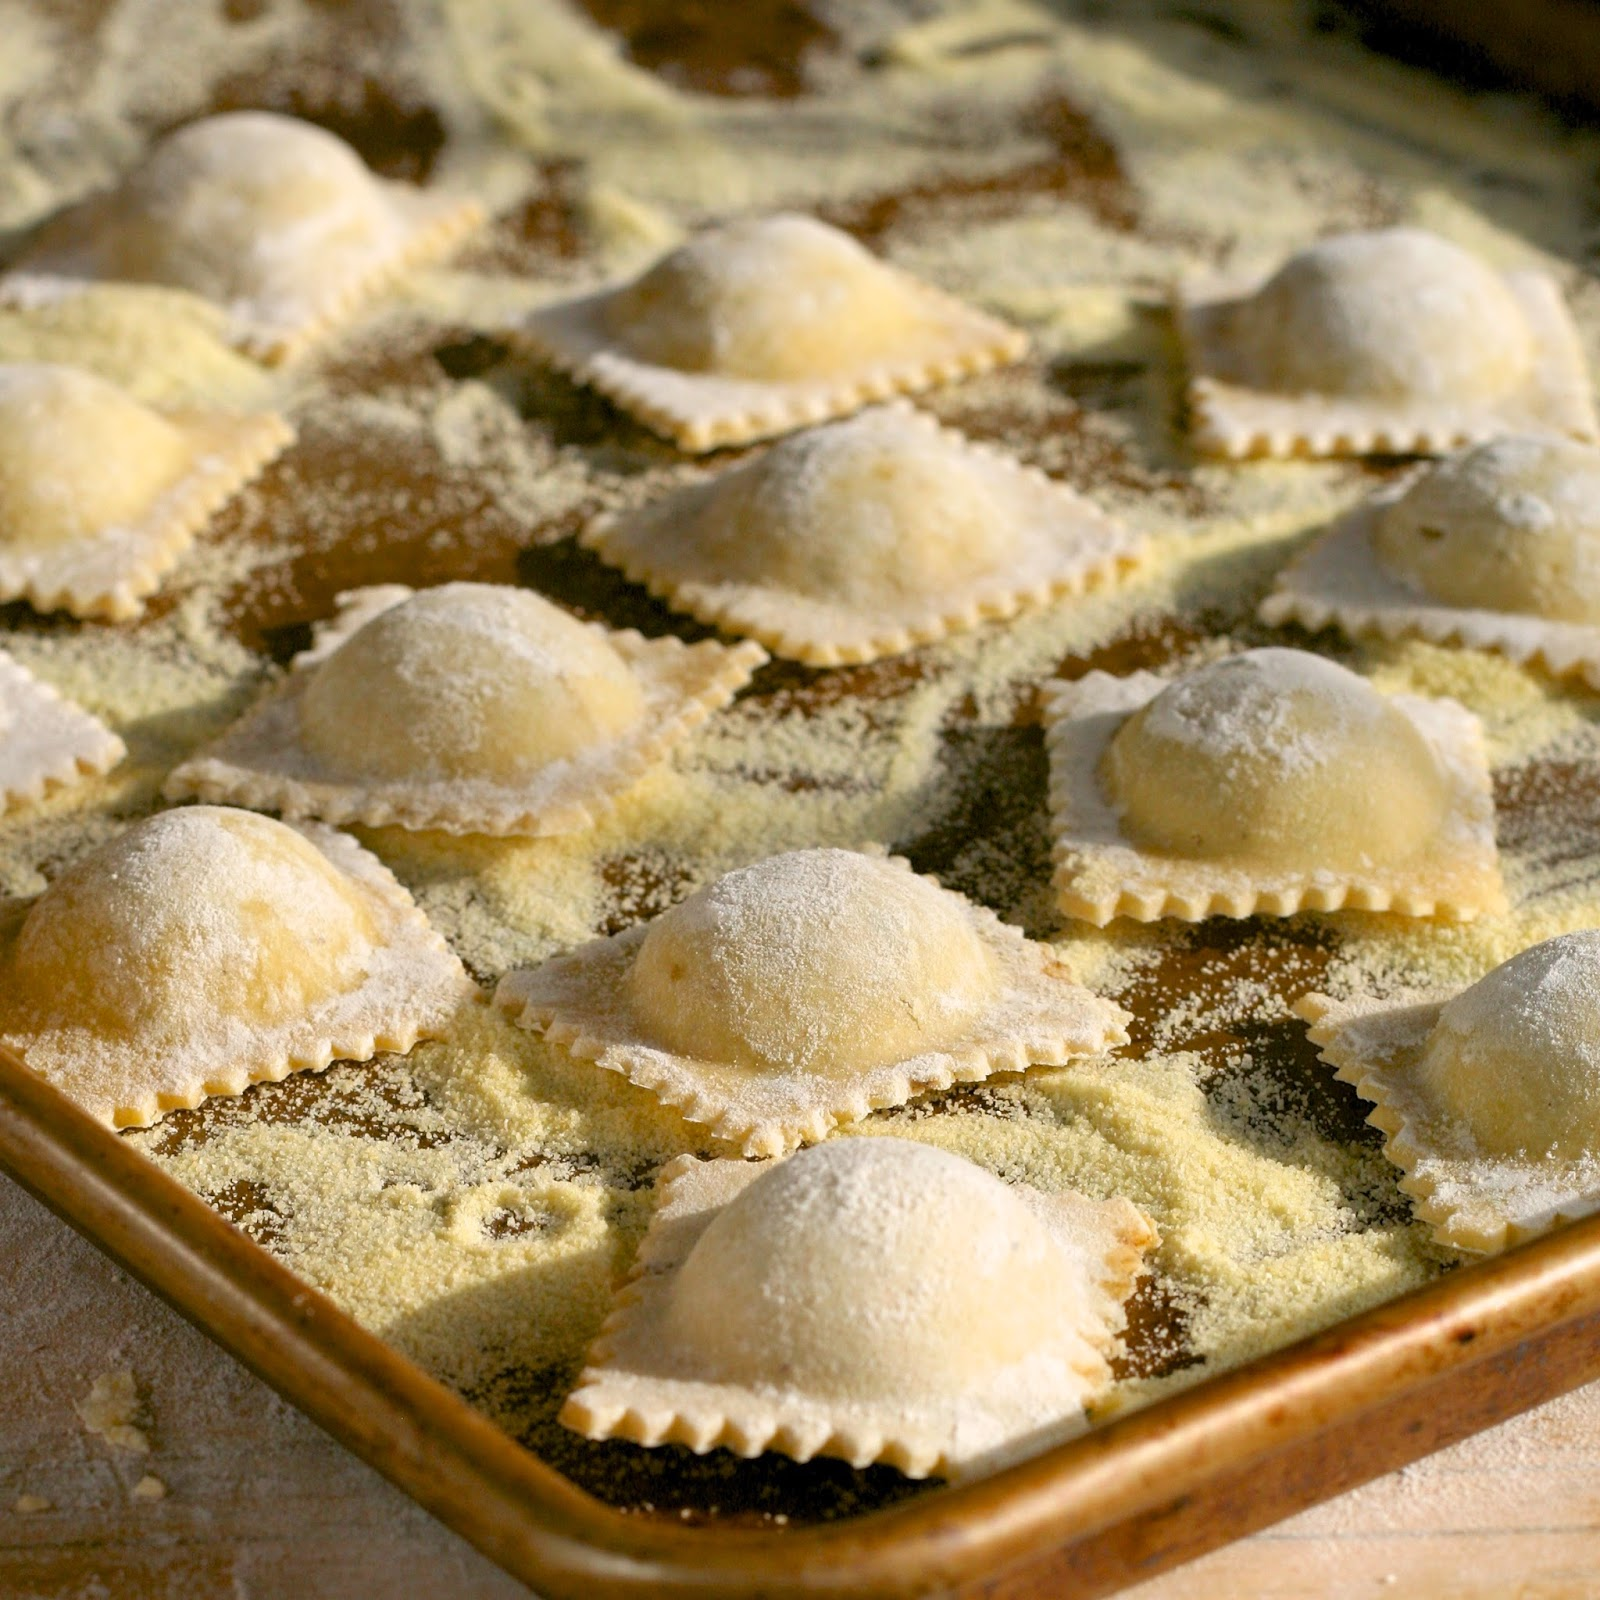 Homemade ravioli can be eaten every day